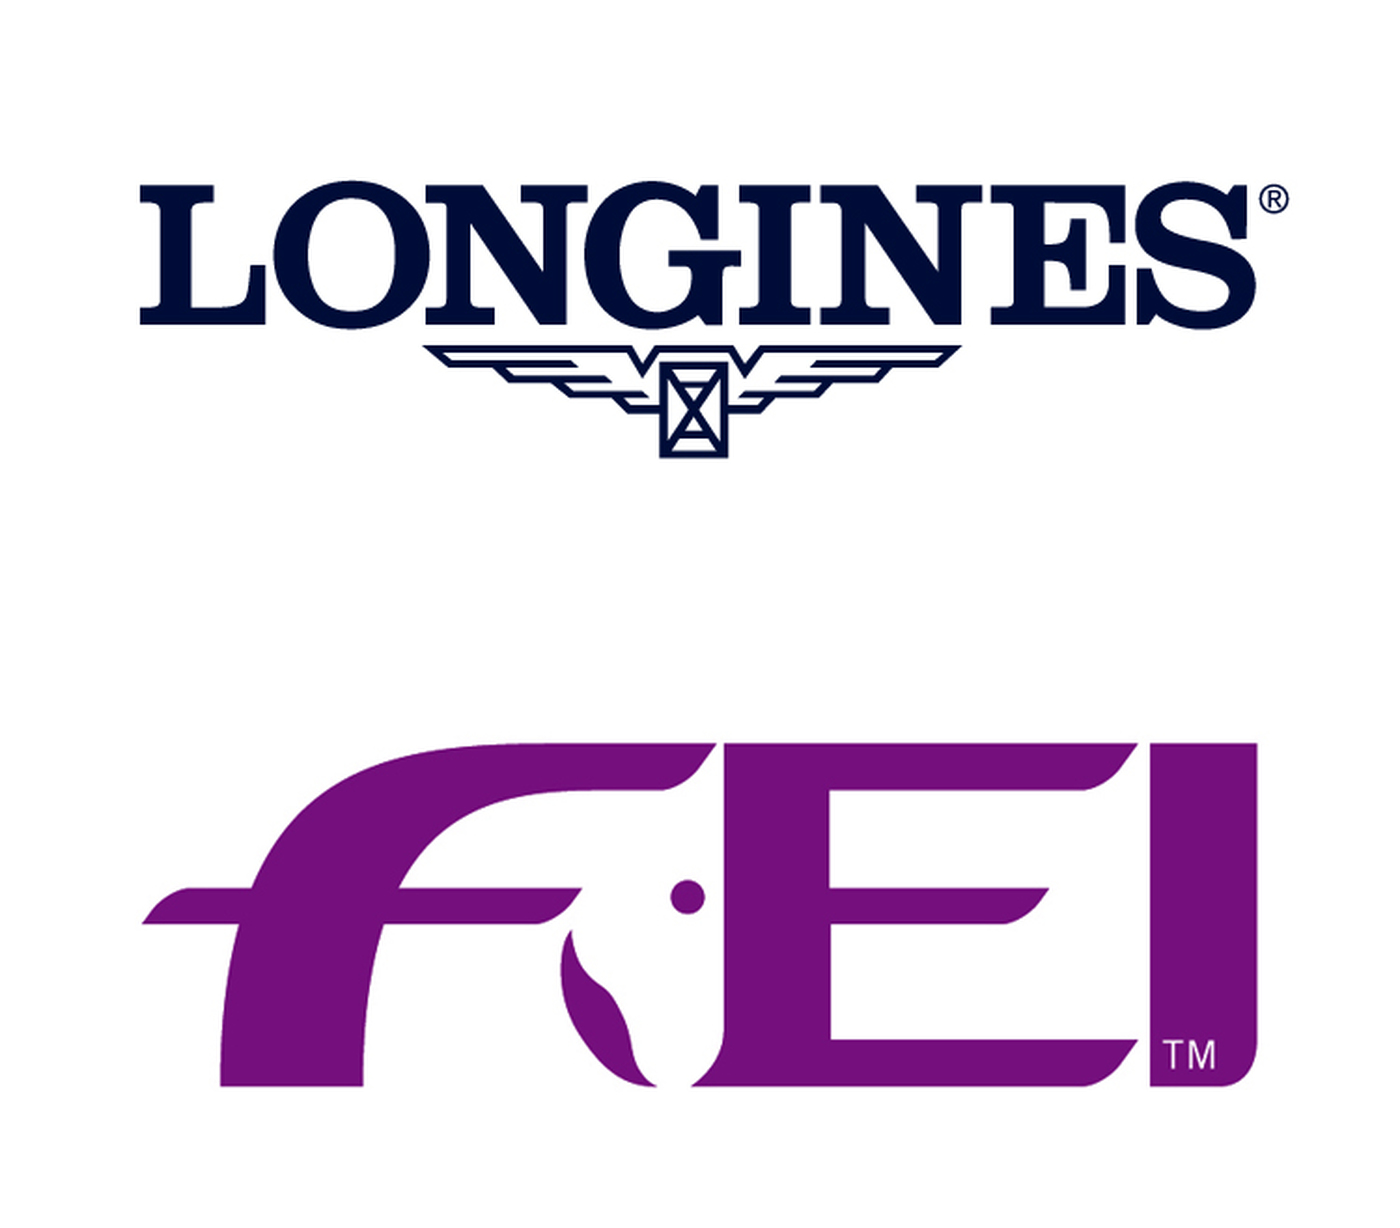 Longines Show Jumping Event: Longines becomes FEI Top Partner with historic very long-term deal 1